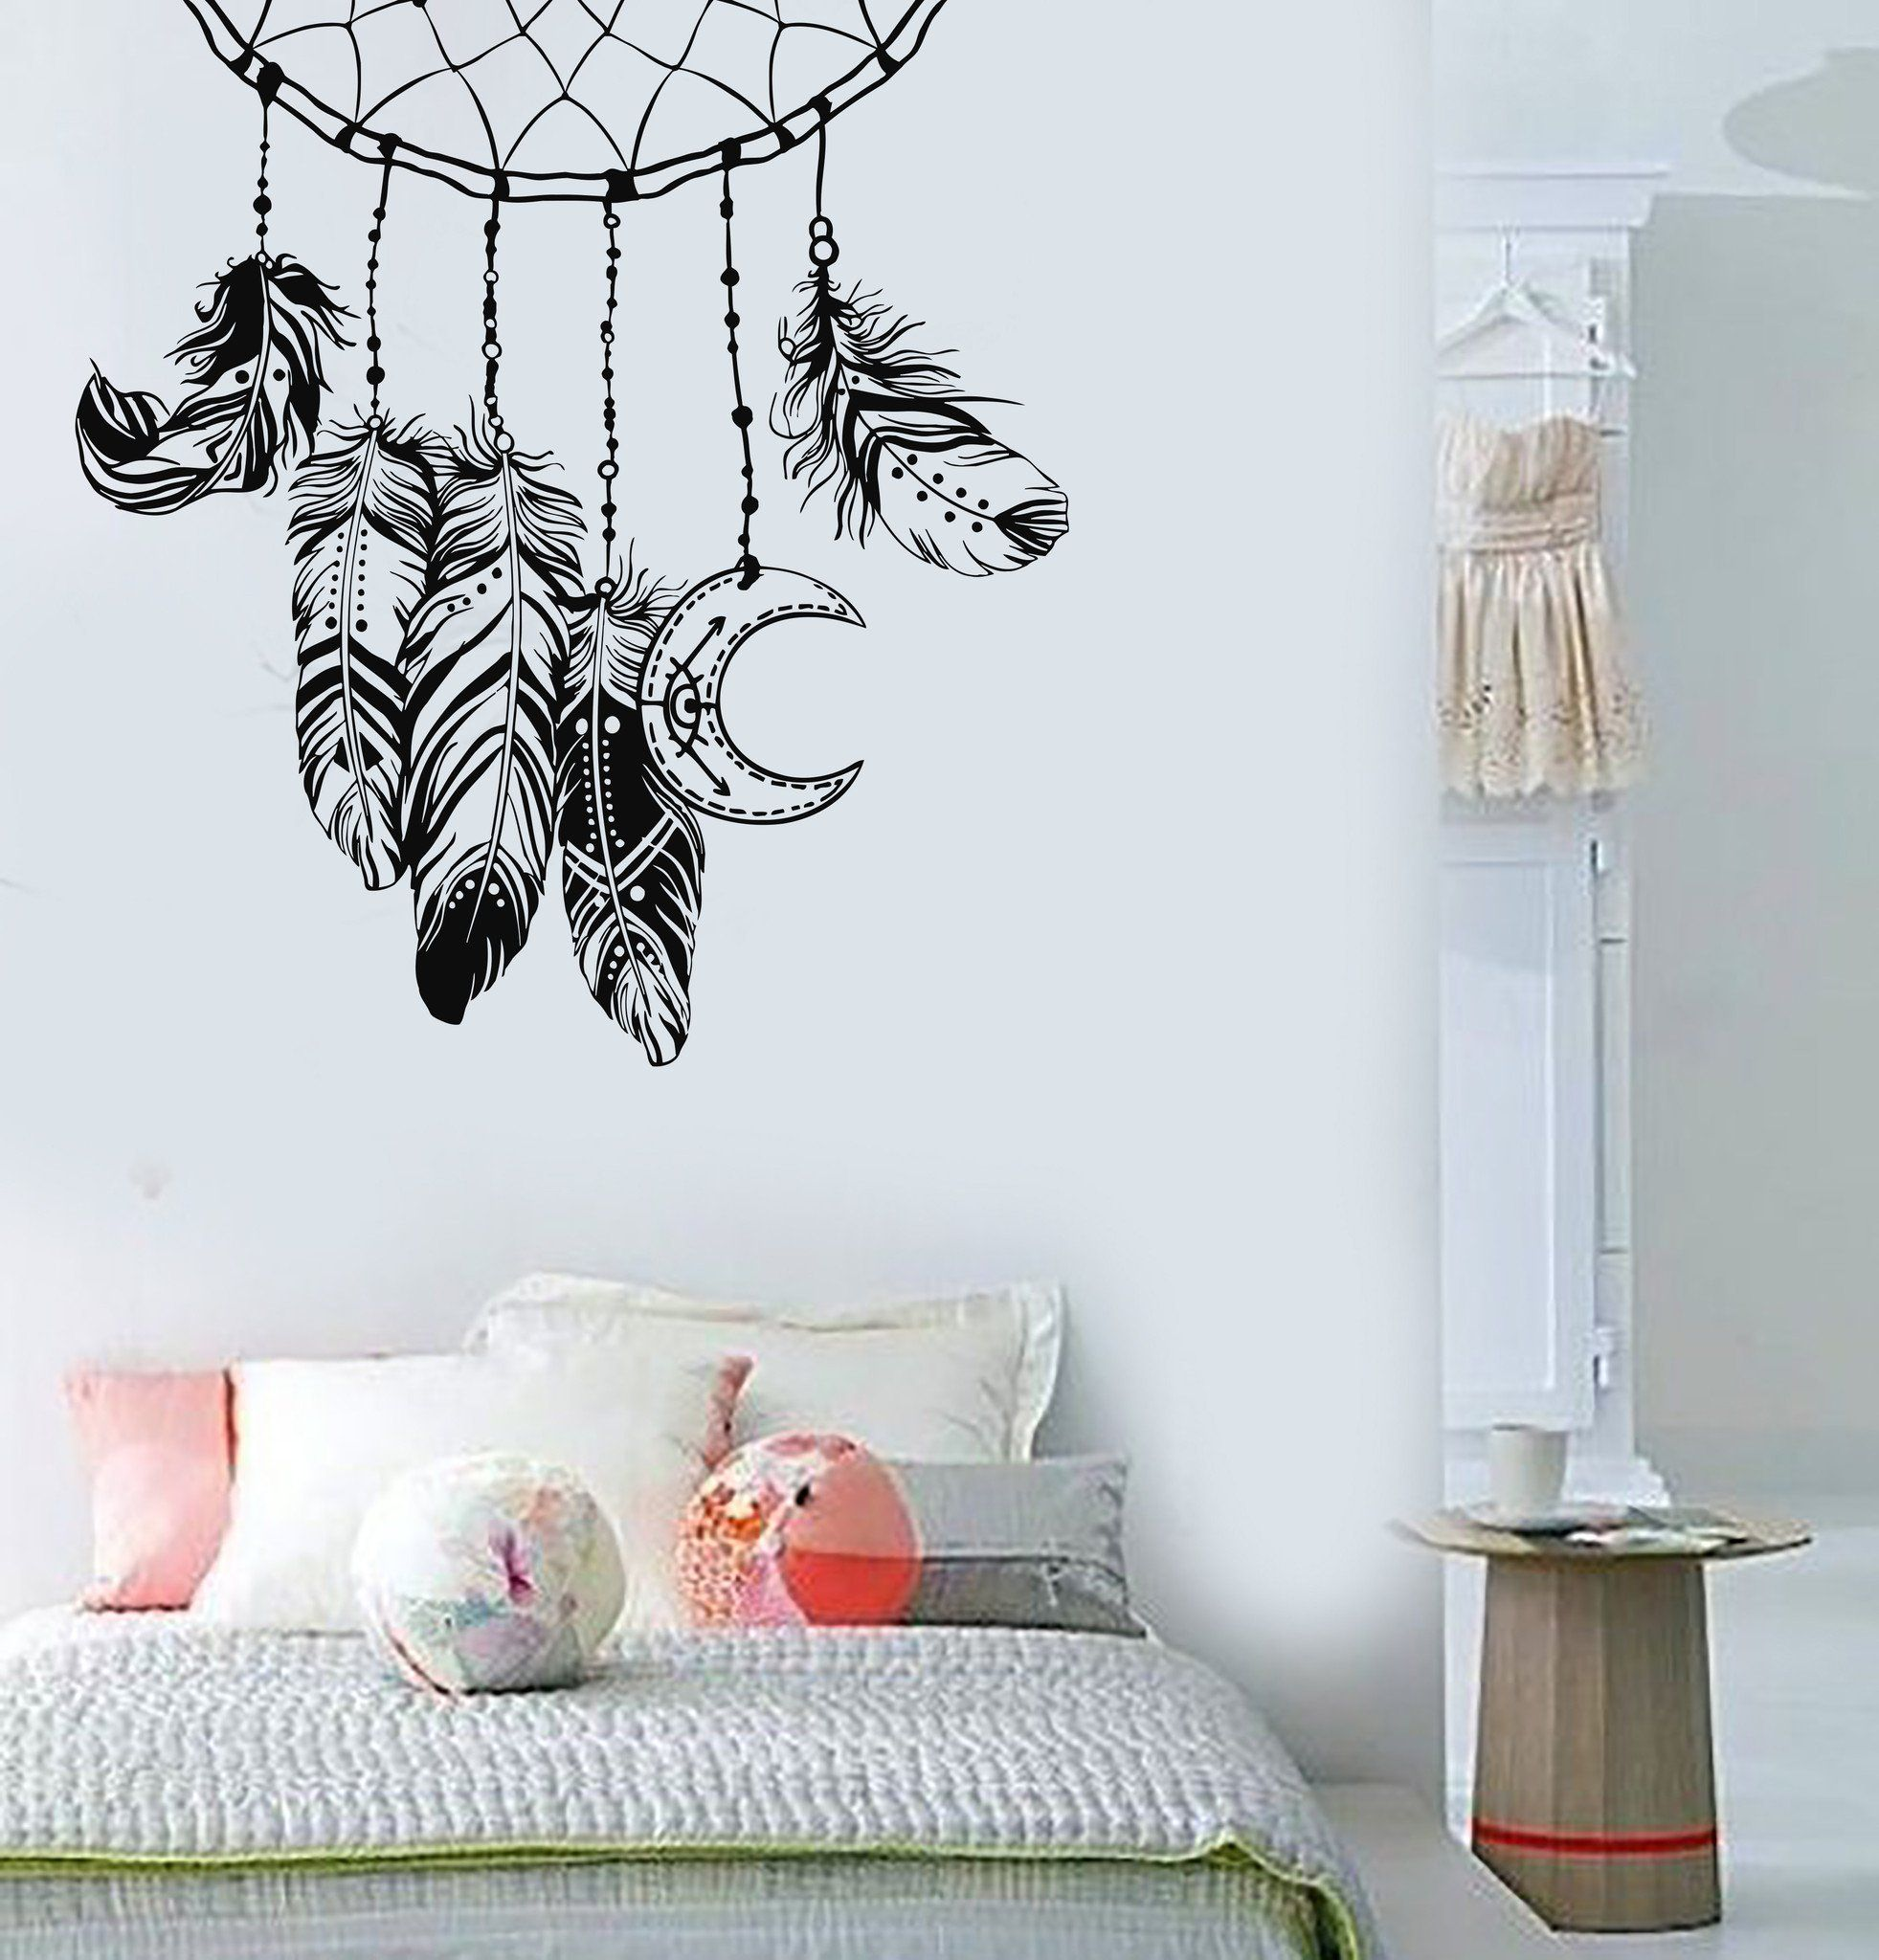 Vinyl Wall Decal Dreamcatcher Feathers Bedroom Design